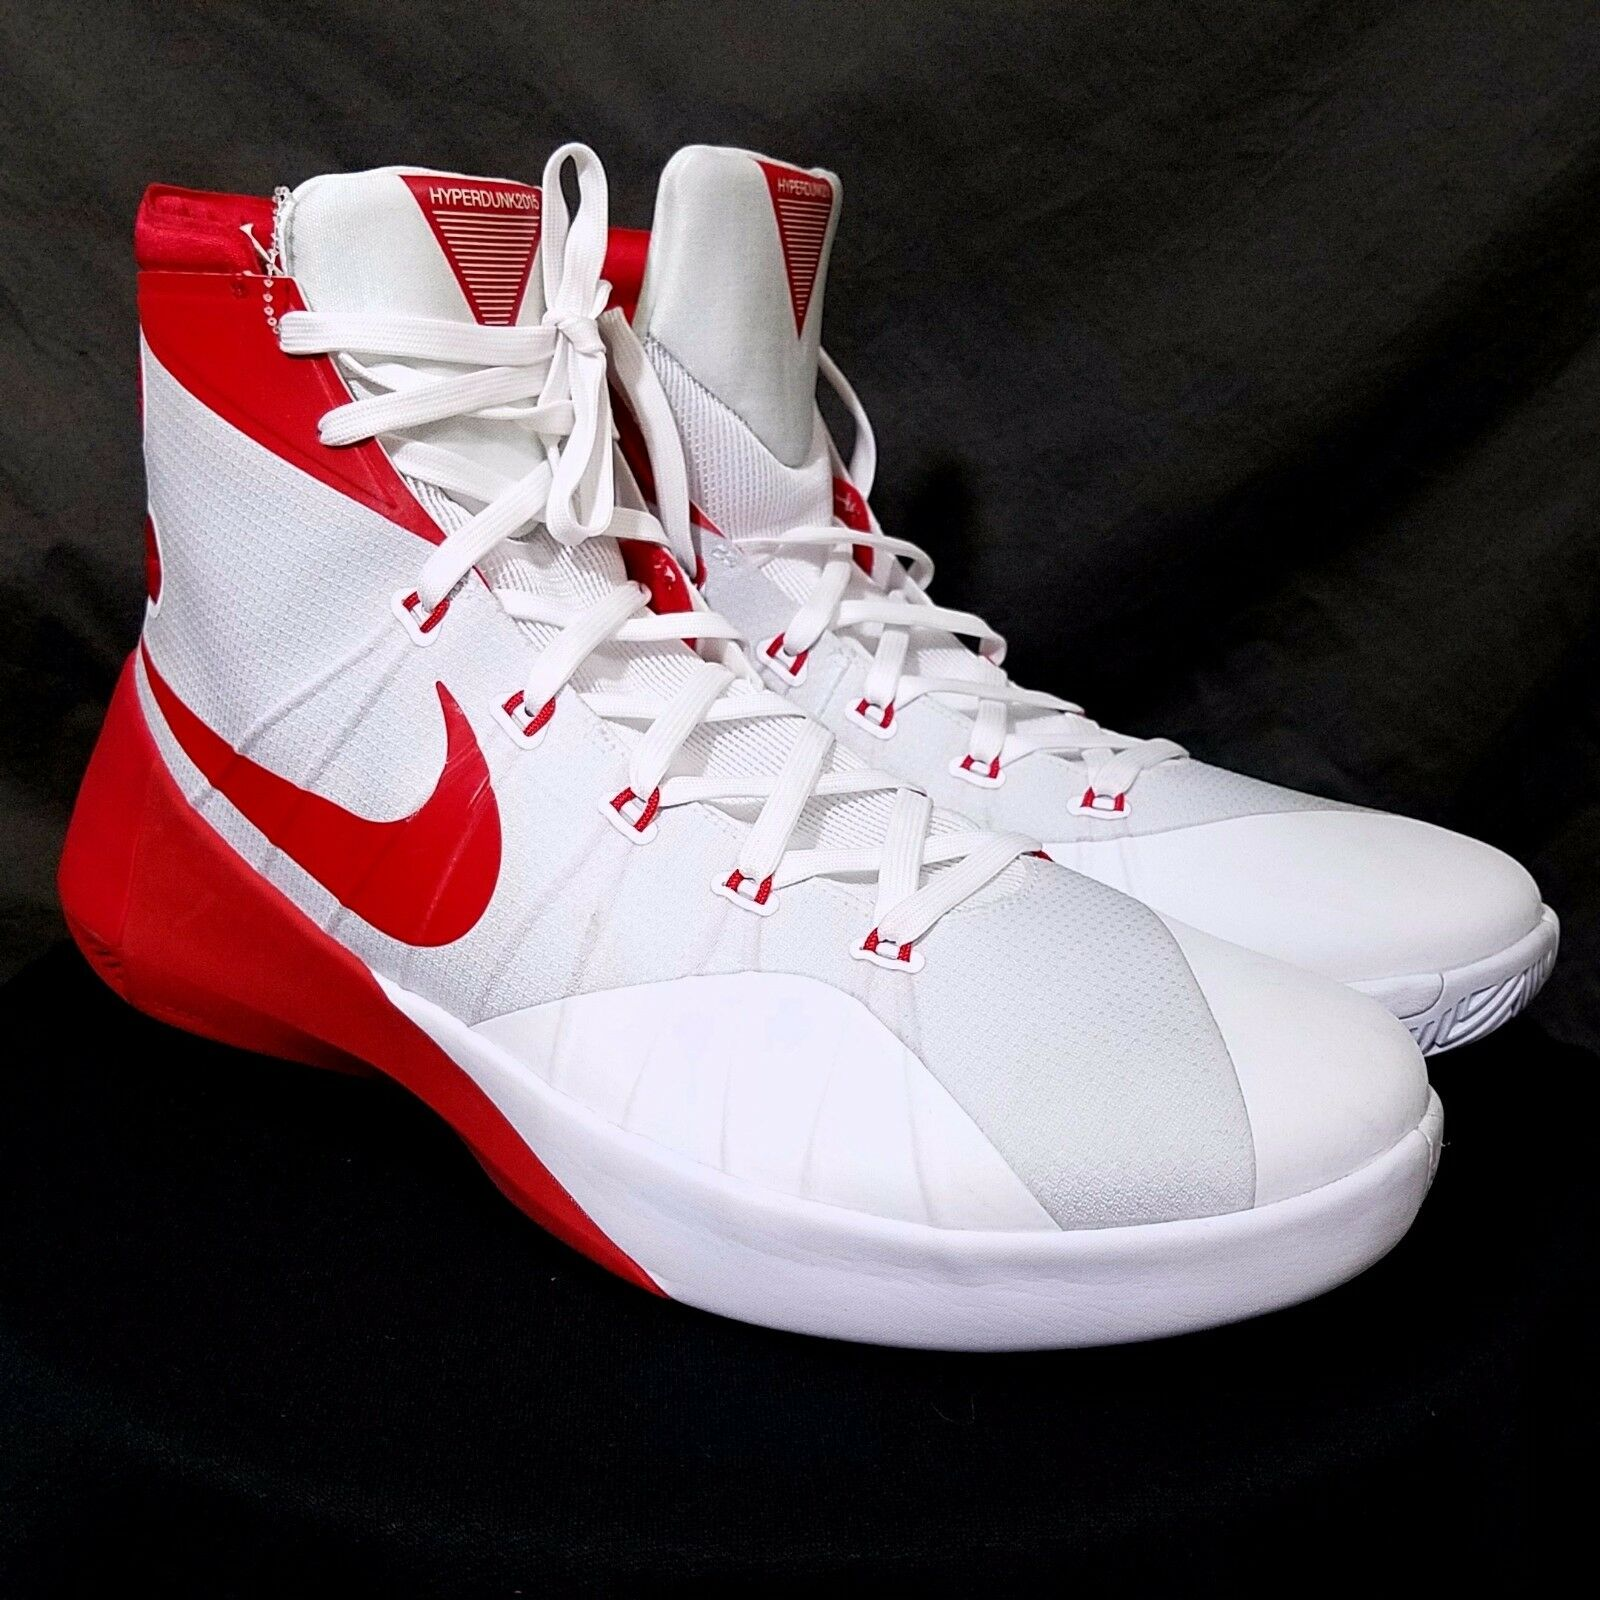 Nike Mens Hyperdunk 2015 TB Basketball shoes 812944 162 Red US 17 NEW